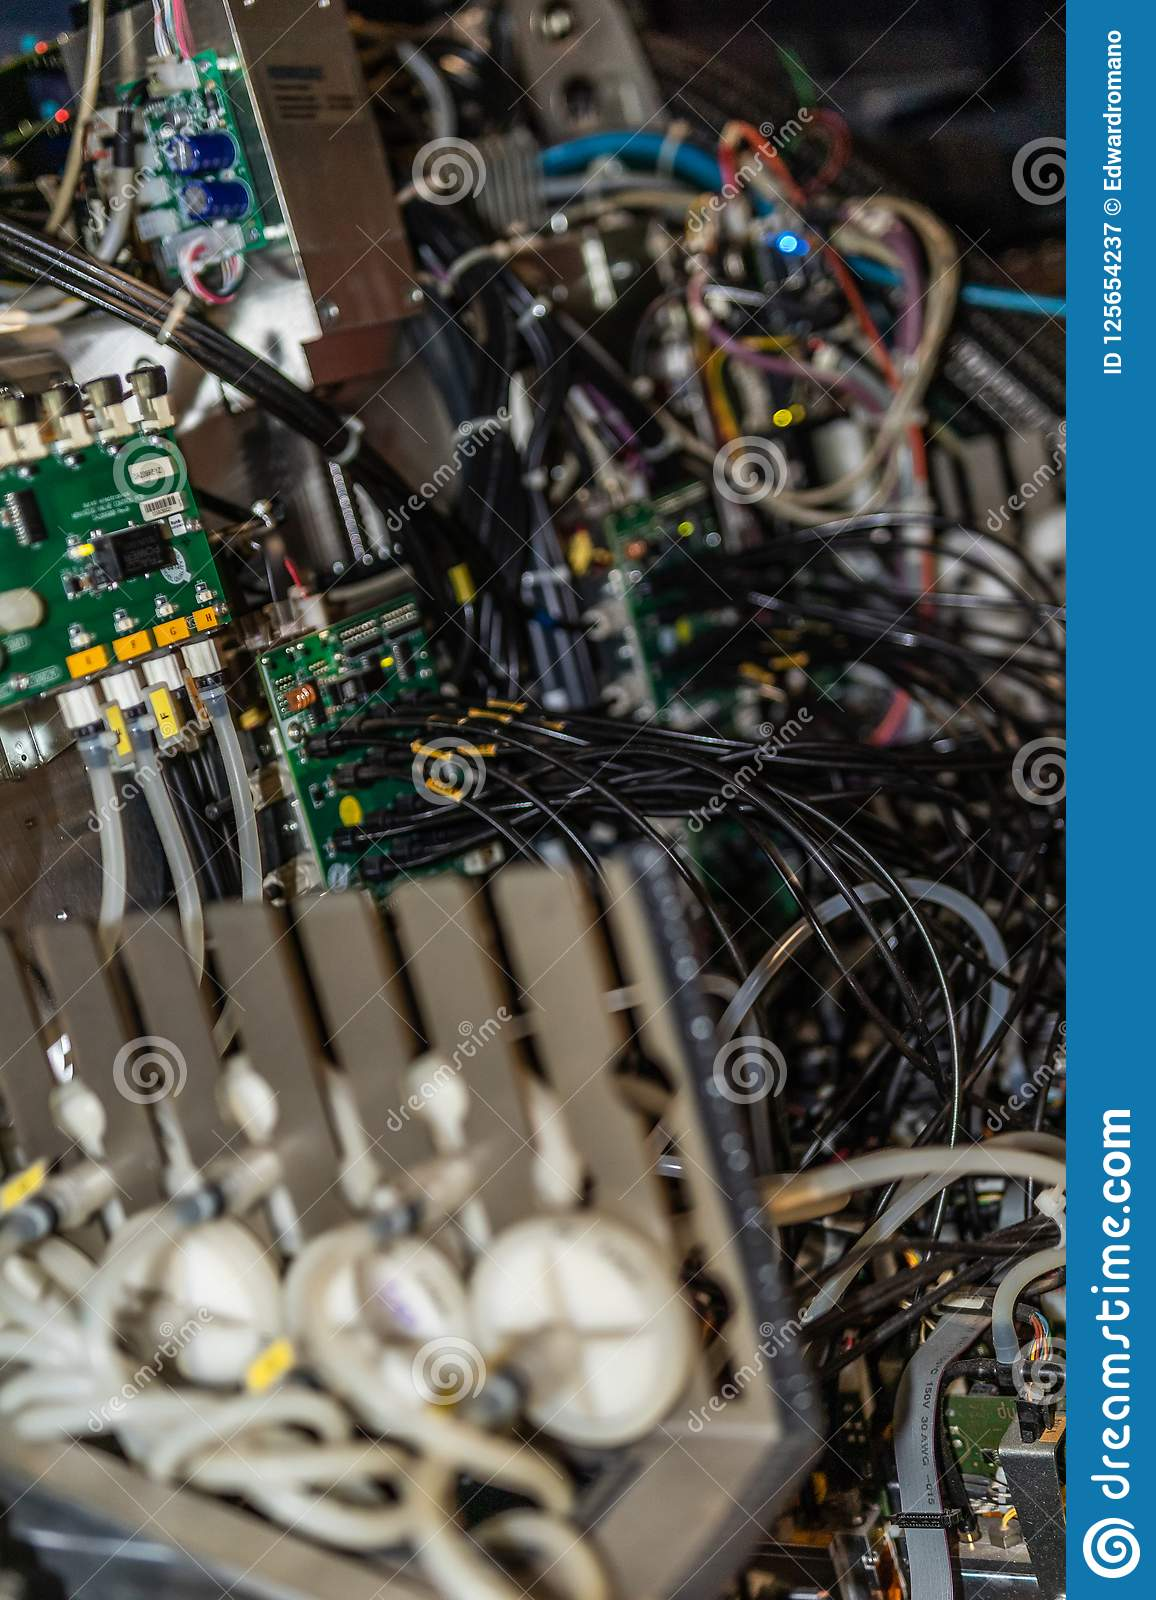 Big professional printer, detailed shot of the motherboard and the wiring system